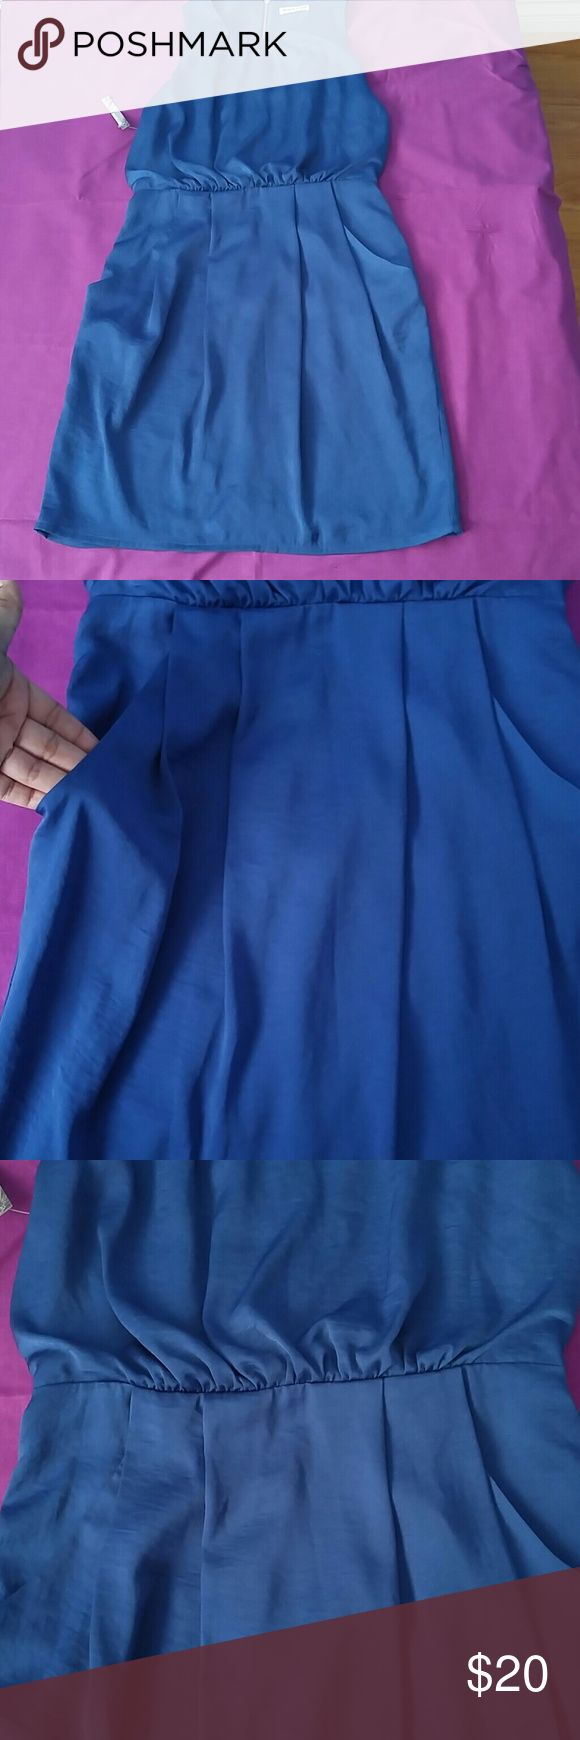 Whistles dress This gorgeous blue dress is simply beautiful and a great dress for any event. It shows off your assets while keeping it classy. 100% polyester side pockets and above the knee length. Whistles Dresses Strapless